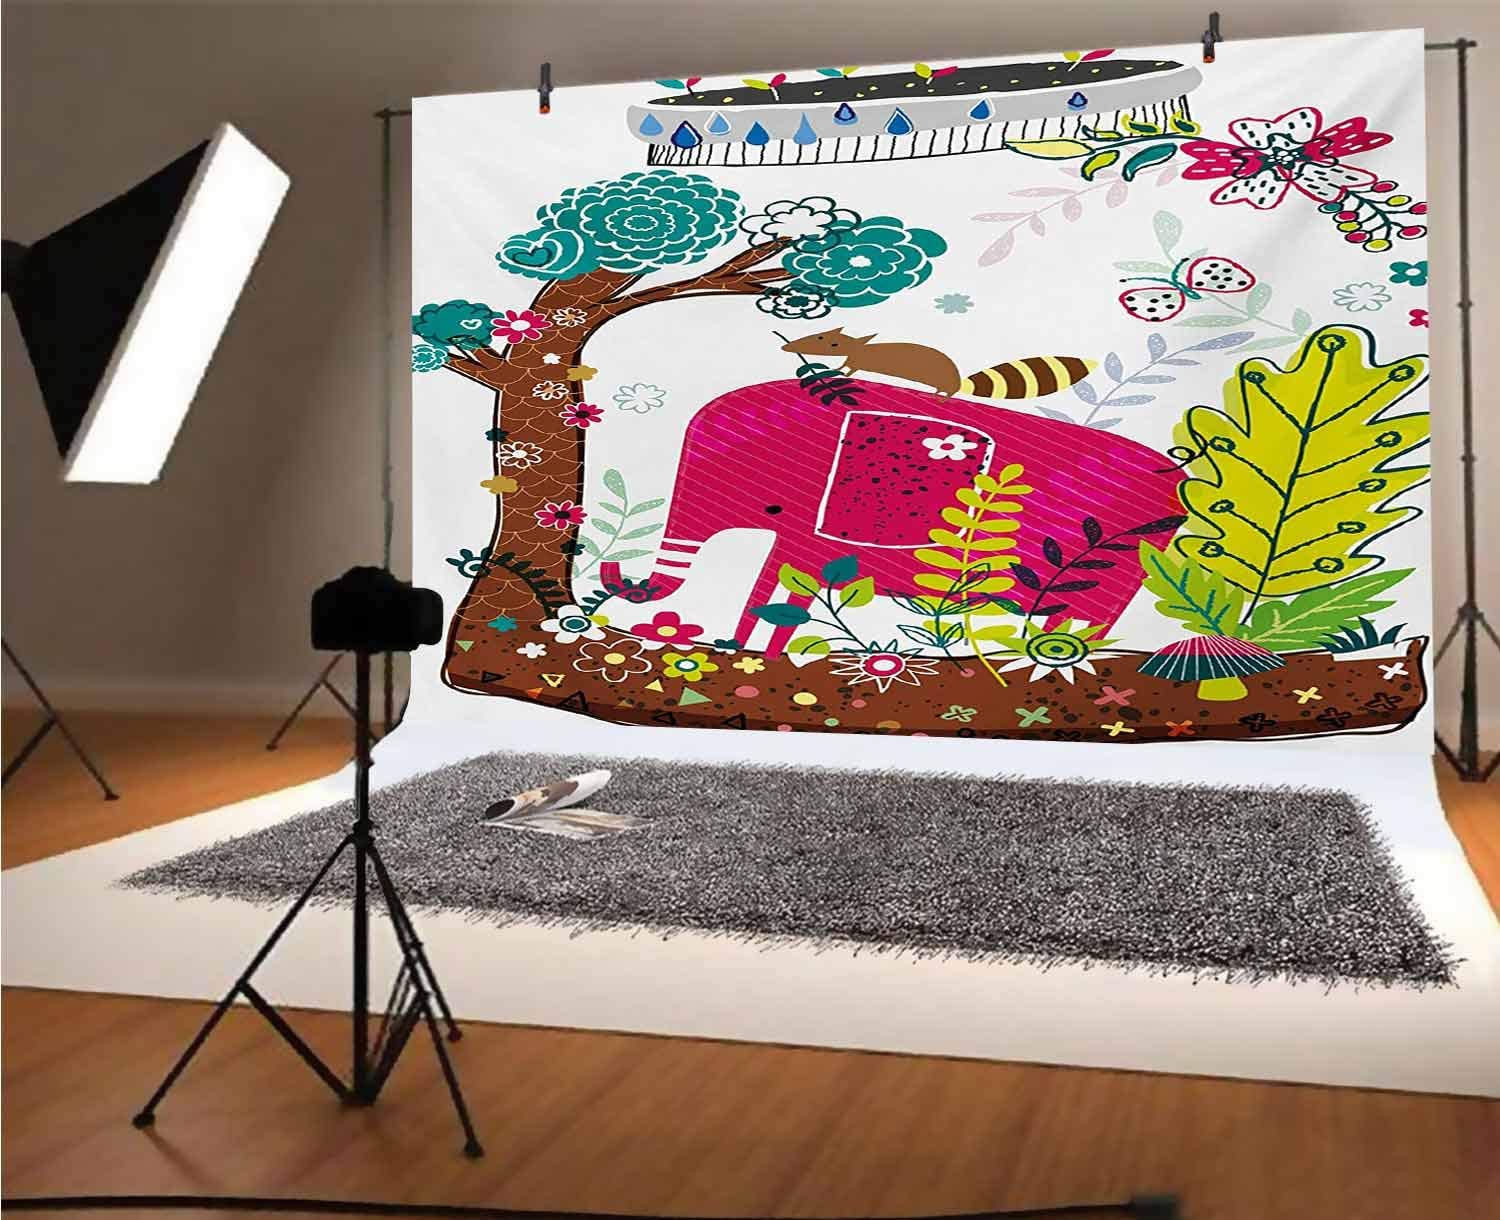 Kids 8x6 FT Vinyl Backdrop PhotographersColorful Handdrawn Animals Elephant Squirrel Tree Floral Jungle Nature Illustration Background for Party Home Decor Outdoorsy Theme Shoot Props